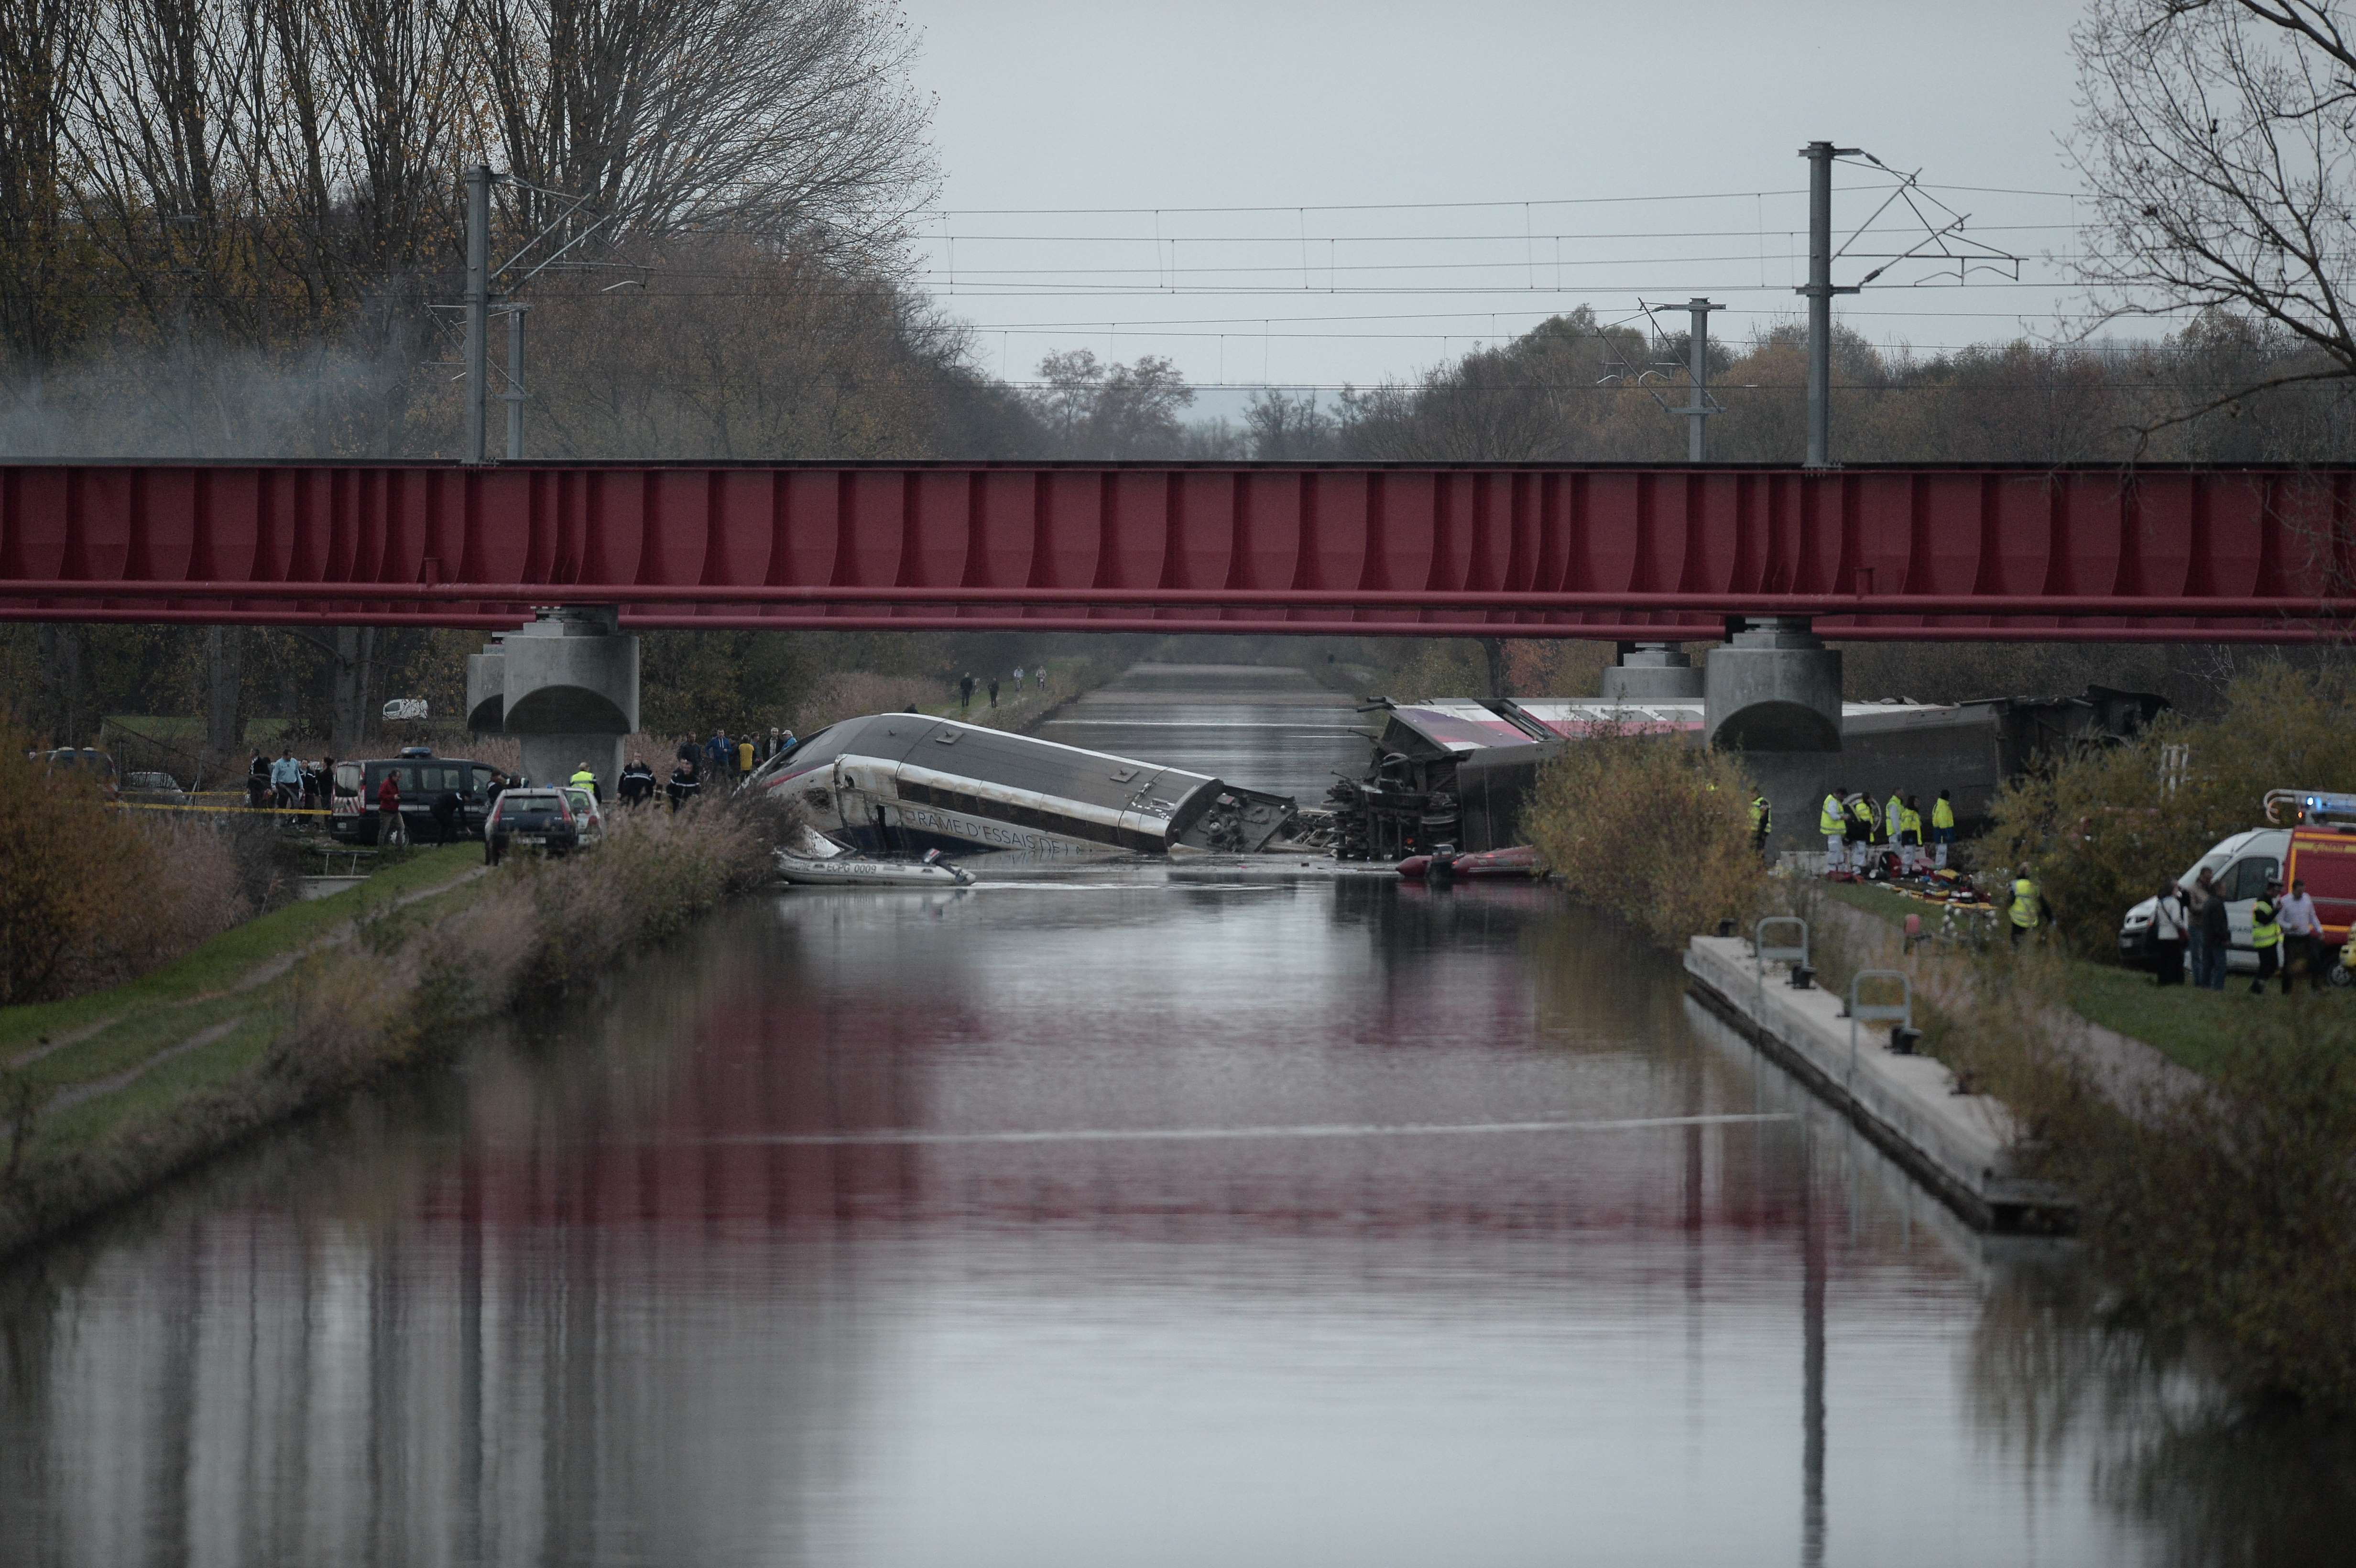 A high-seepd TGV train coach and engine carriage lie in a canal in Eckwersheim near Strasbourg, northeastern France, after derailing on November 14, 2015 during tests conducted by technicians, Frenh railway operator SNCF said. At least five were killed in French high-speed train test on November 14, due to excessive speed, sources said. AFP PHOTO / FREDERICK FLORINFREDERICK FLORIN/AFP/Getty Images